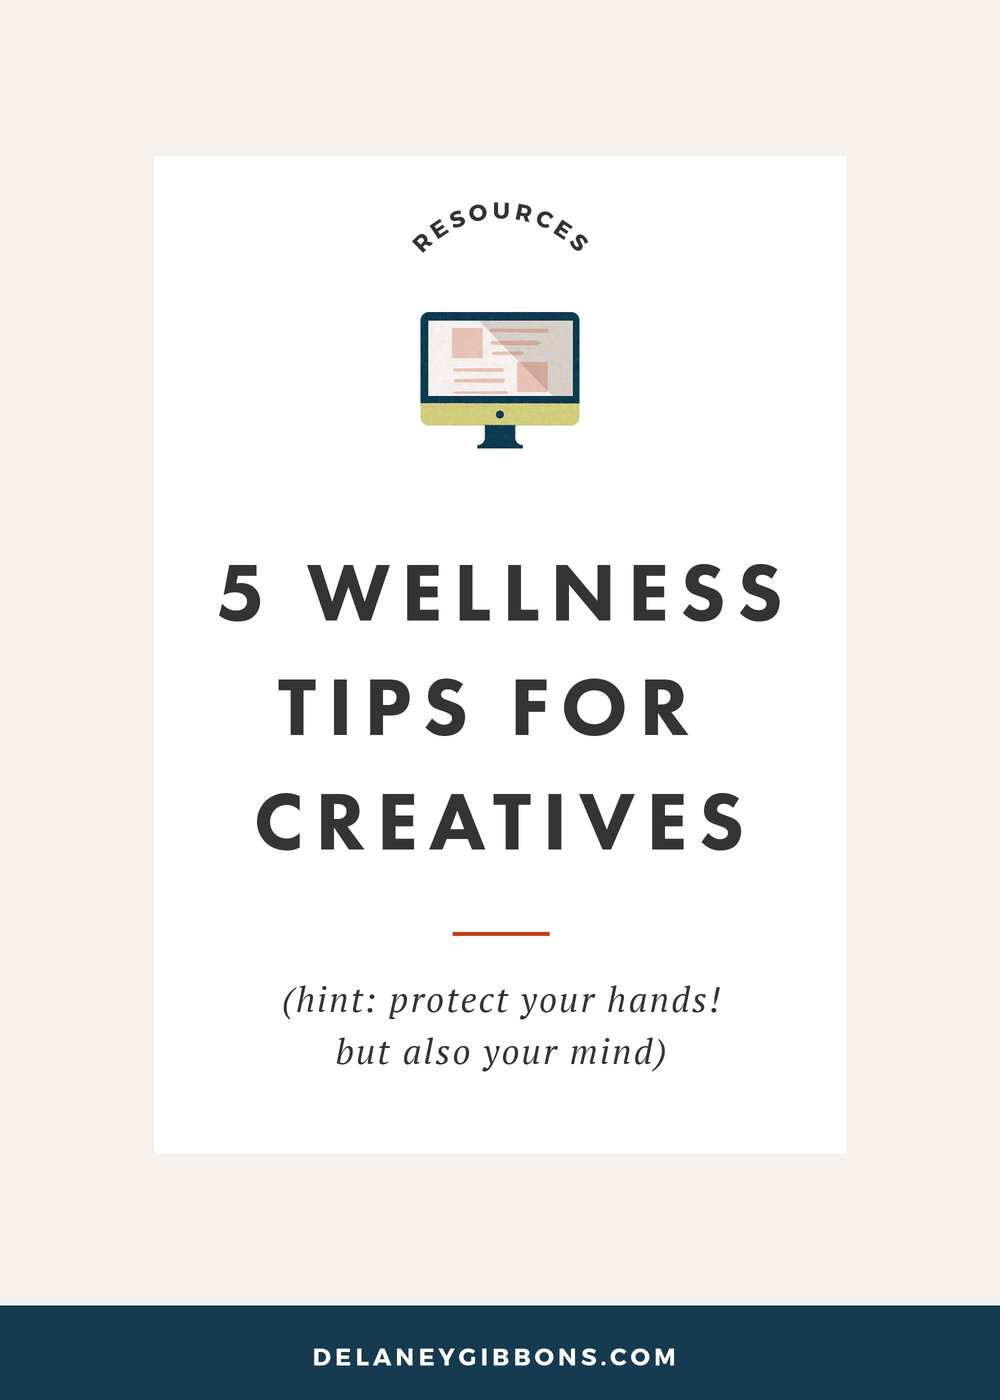 5 Wellness Tips for Creatives (hint: protect your hands! but also your mind) — from Delaney Gibbons Studio